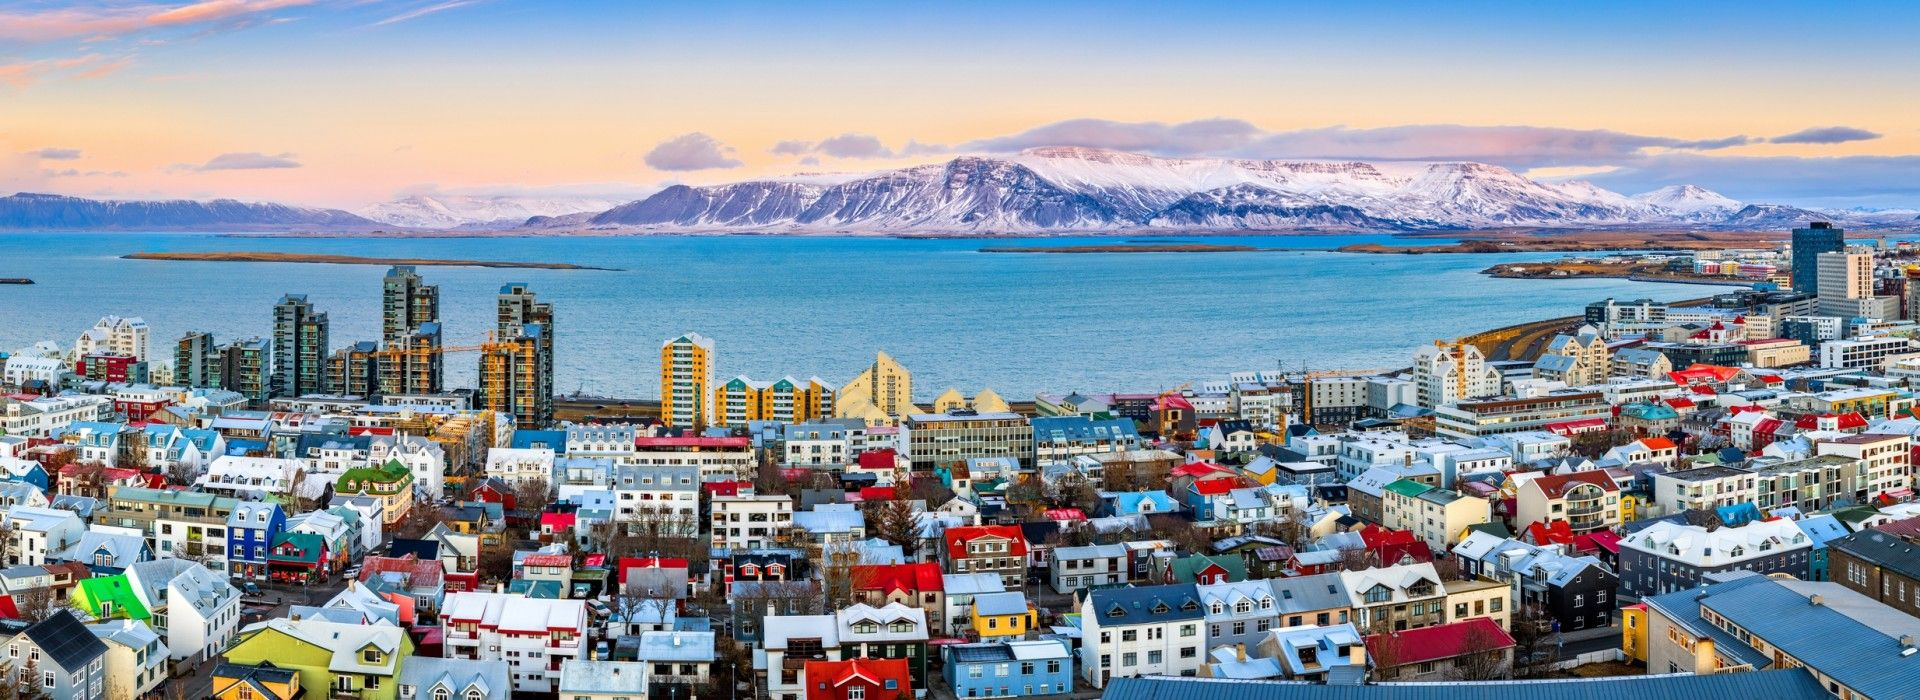 Sightseeing, attractions, culture and history Tours in Northern Europe